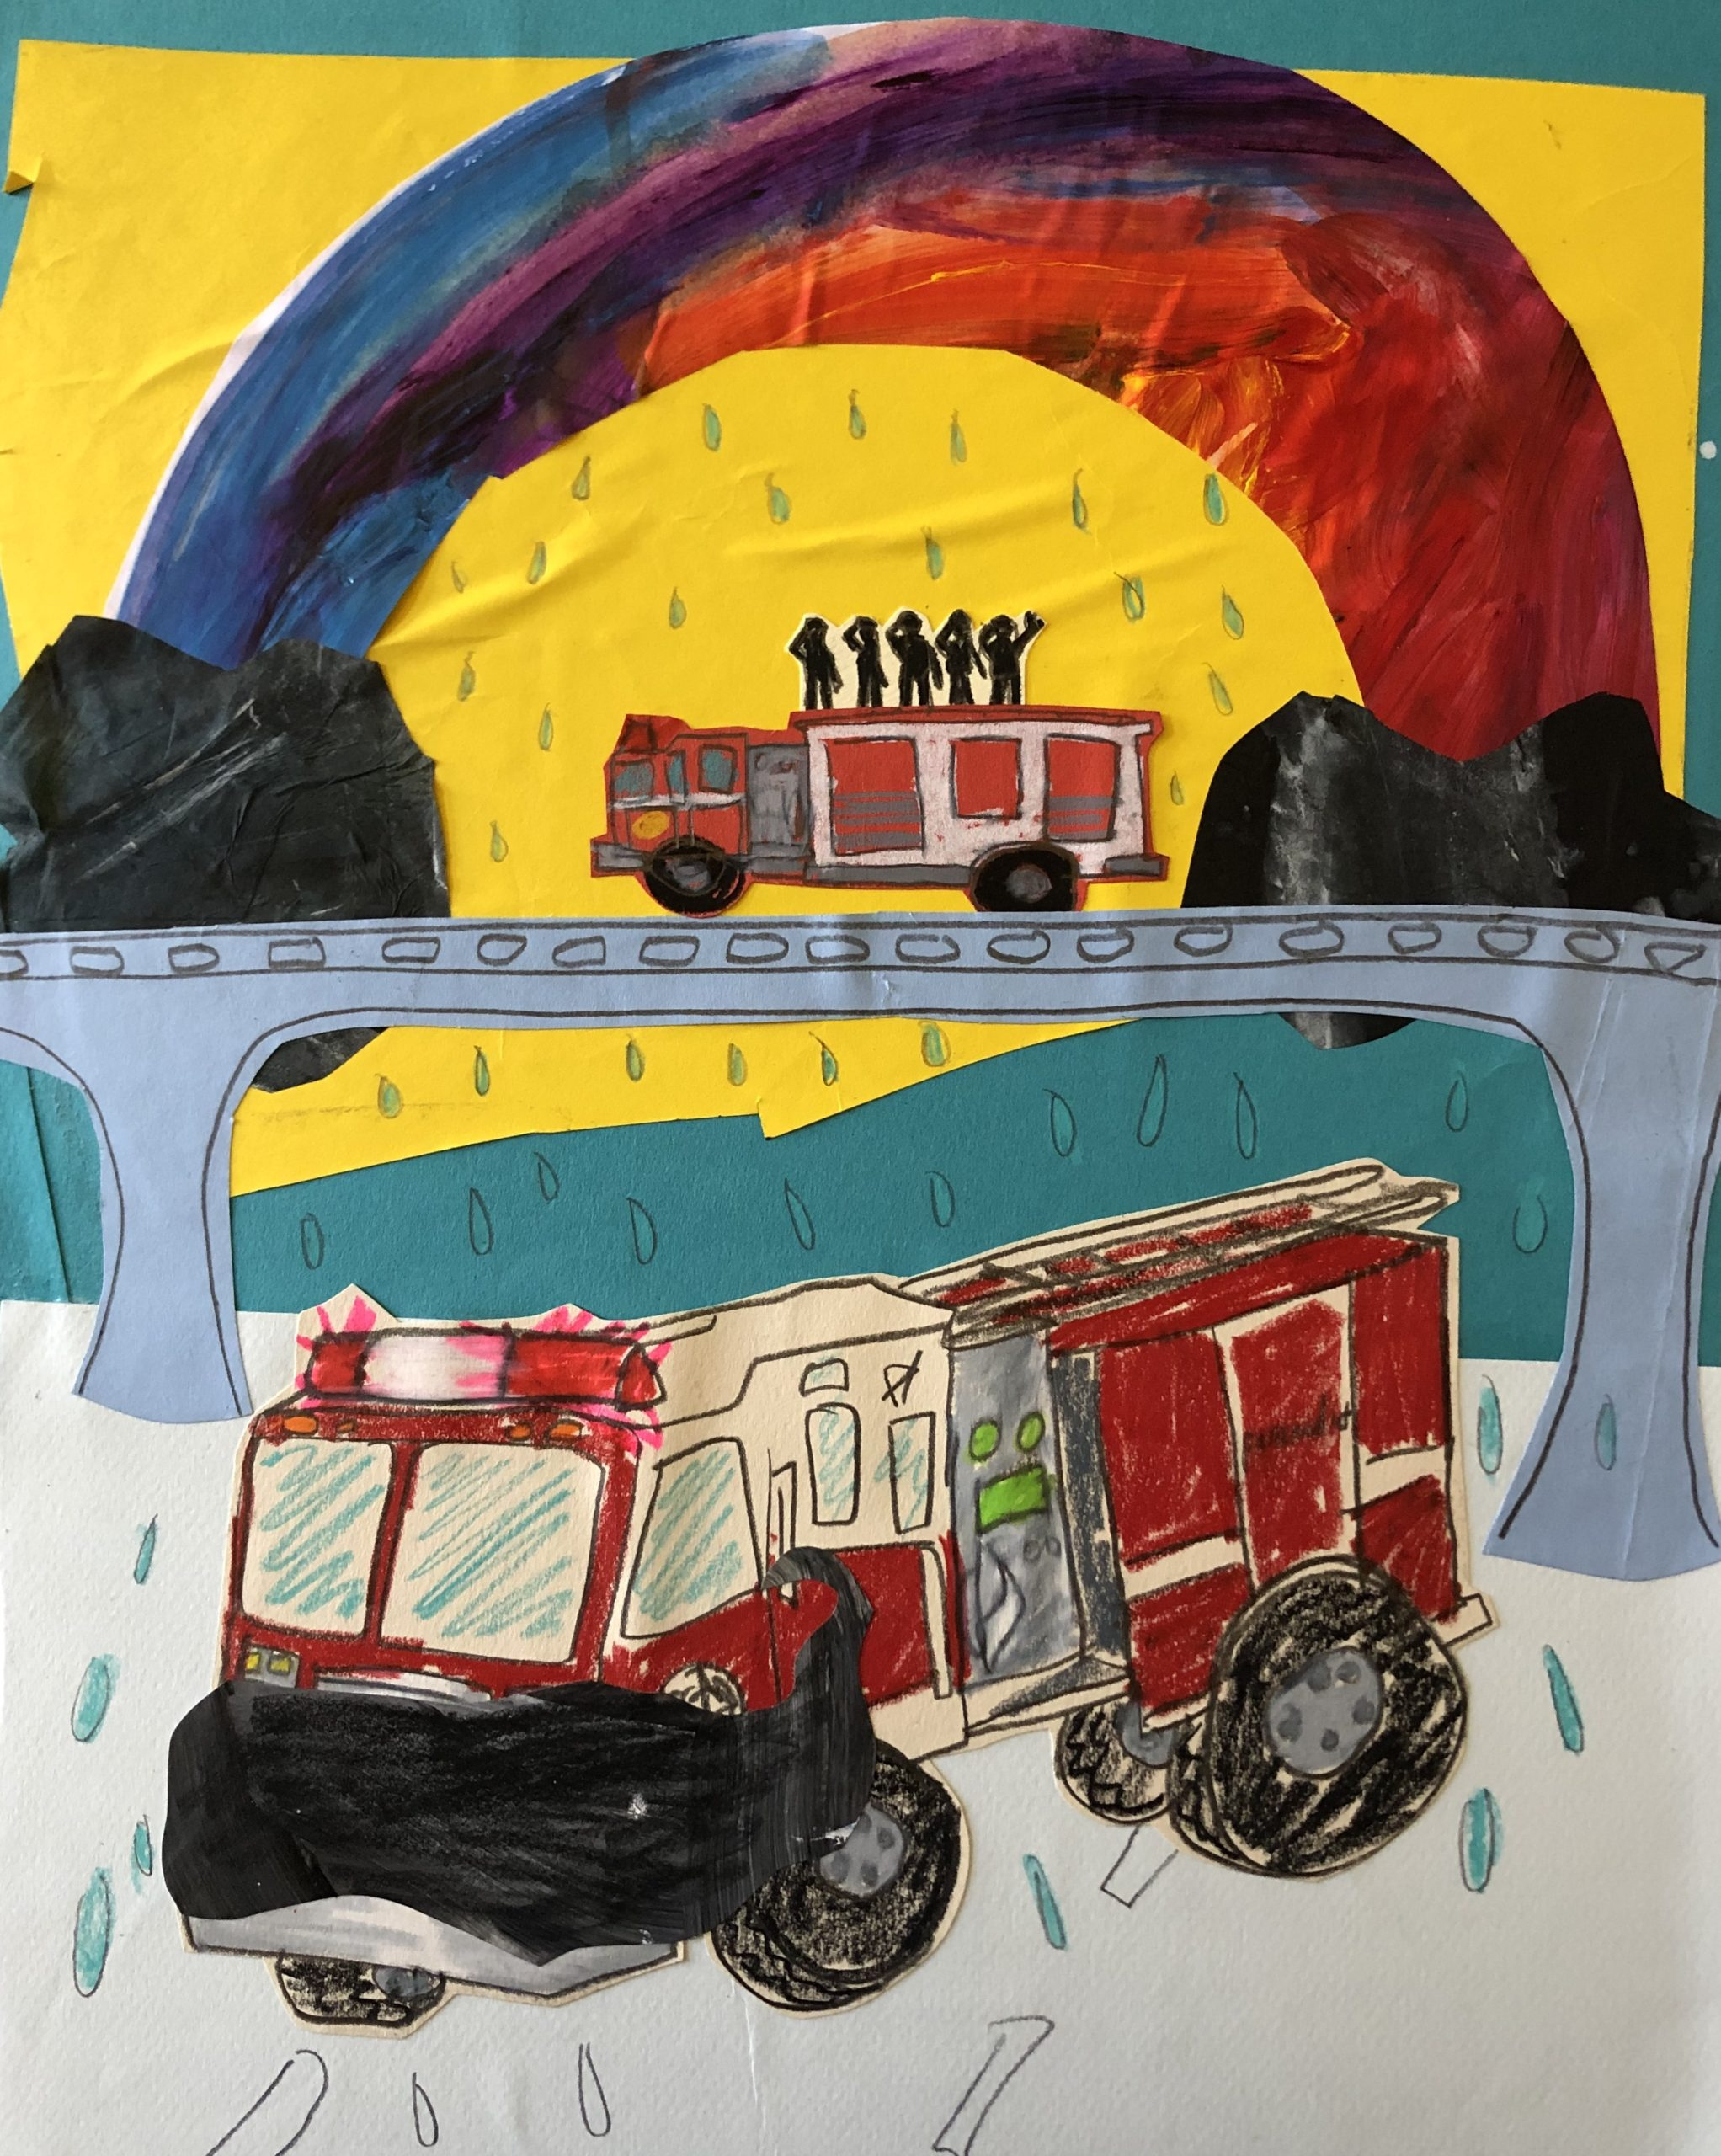 Sunde White illustrates her essay about the fire fighter funeral she saw